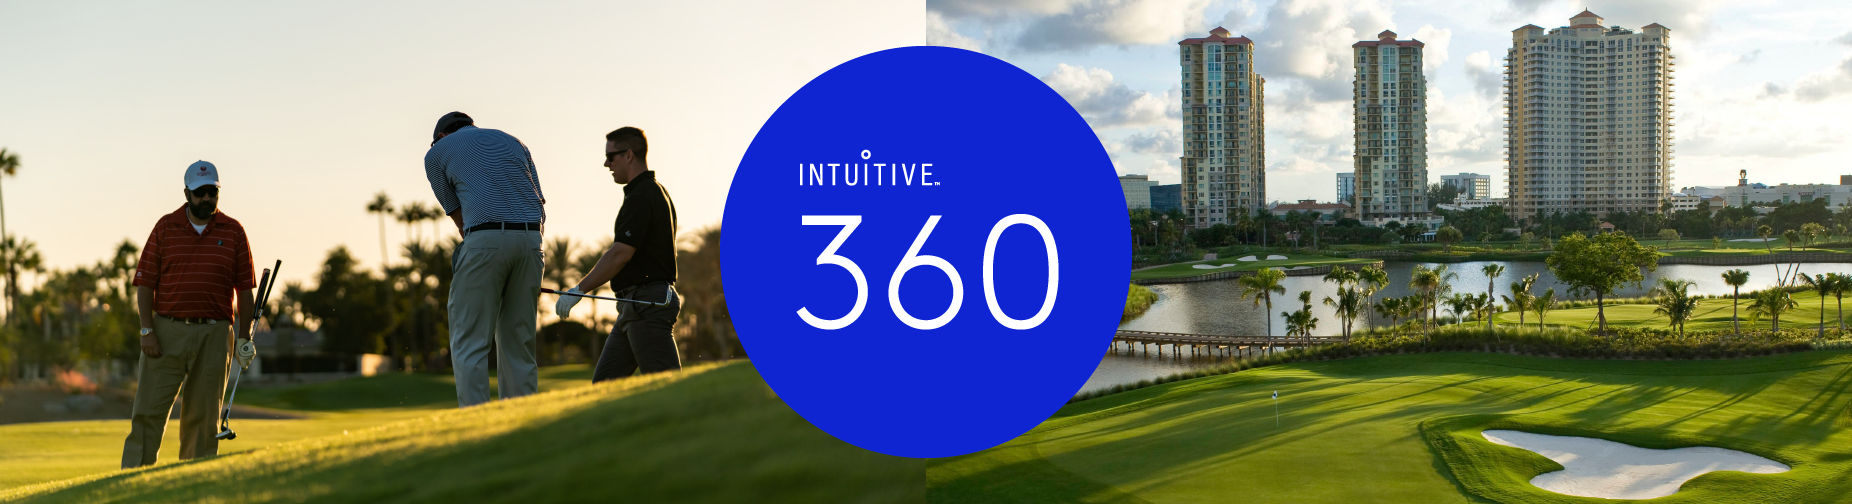 2nd Annual Intuitive 360 Charity Golf Tournament